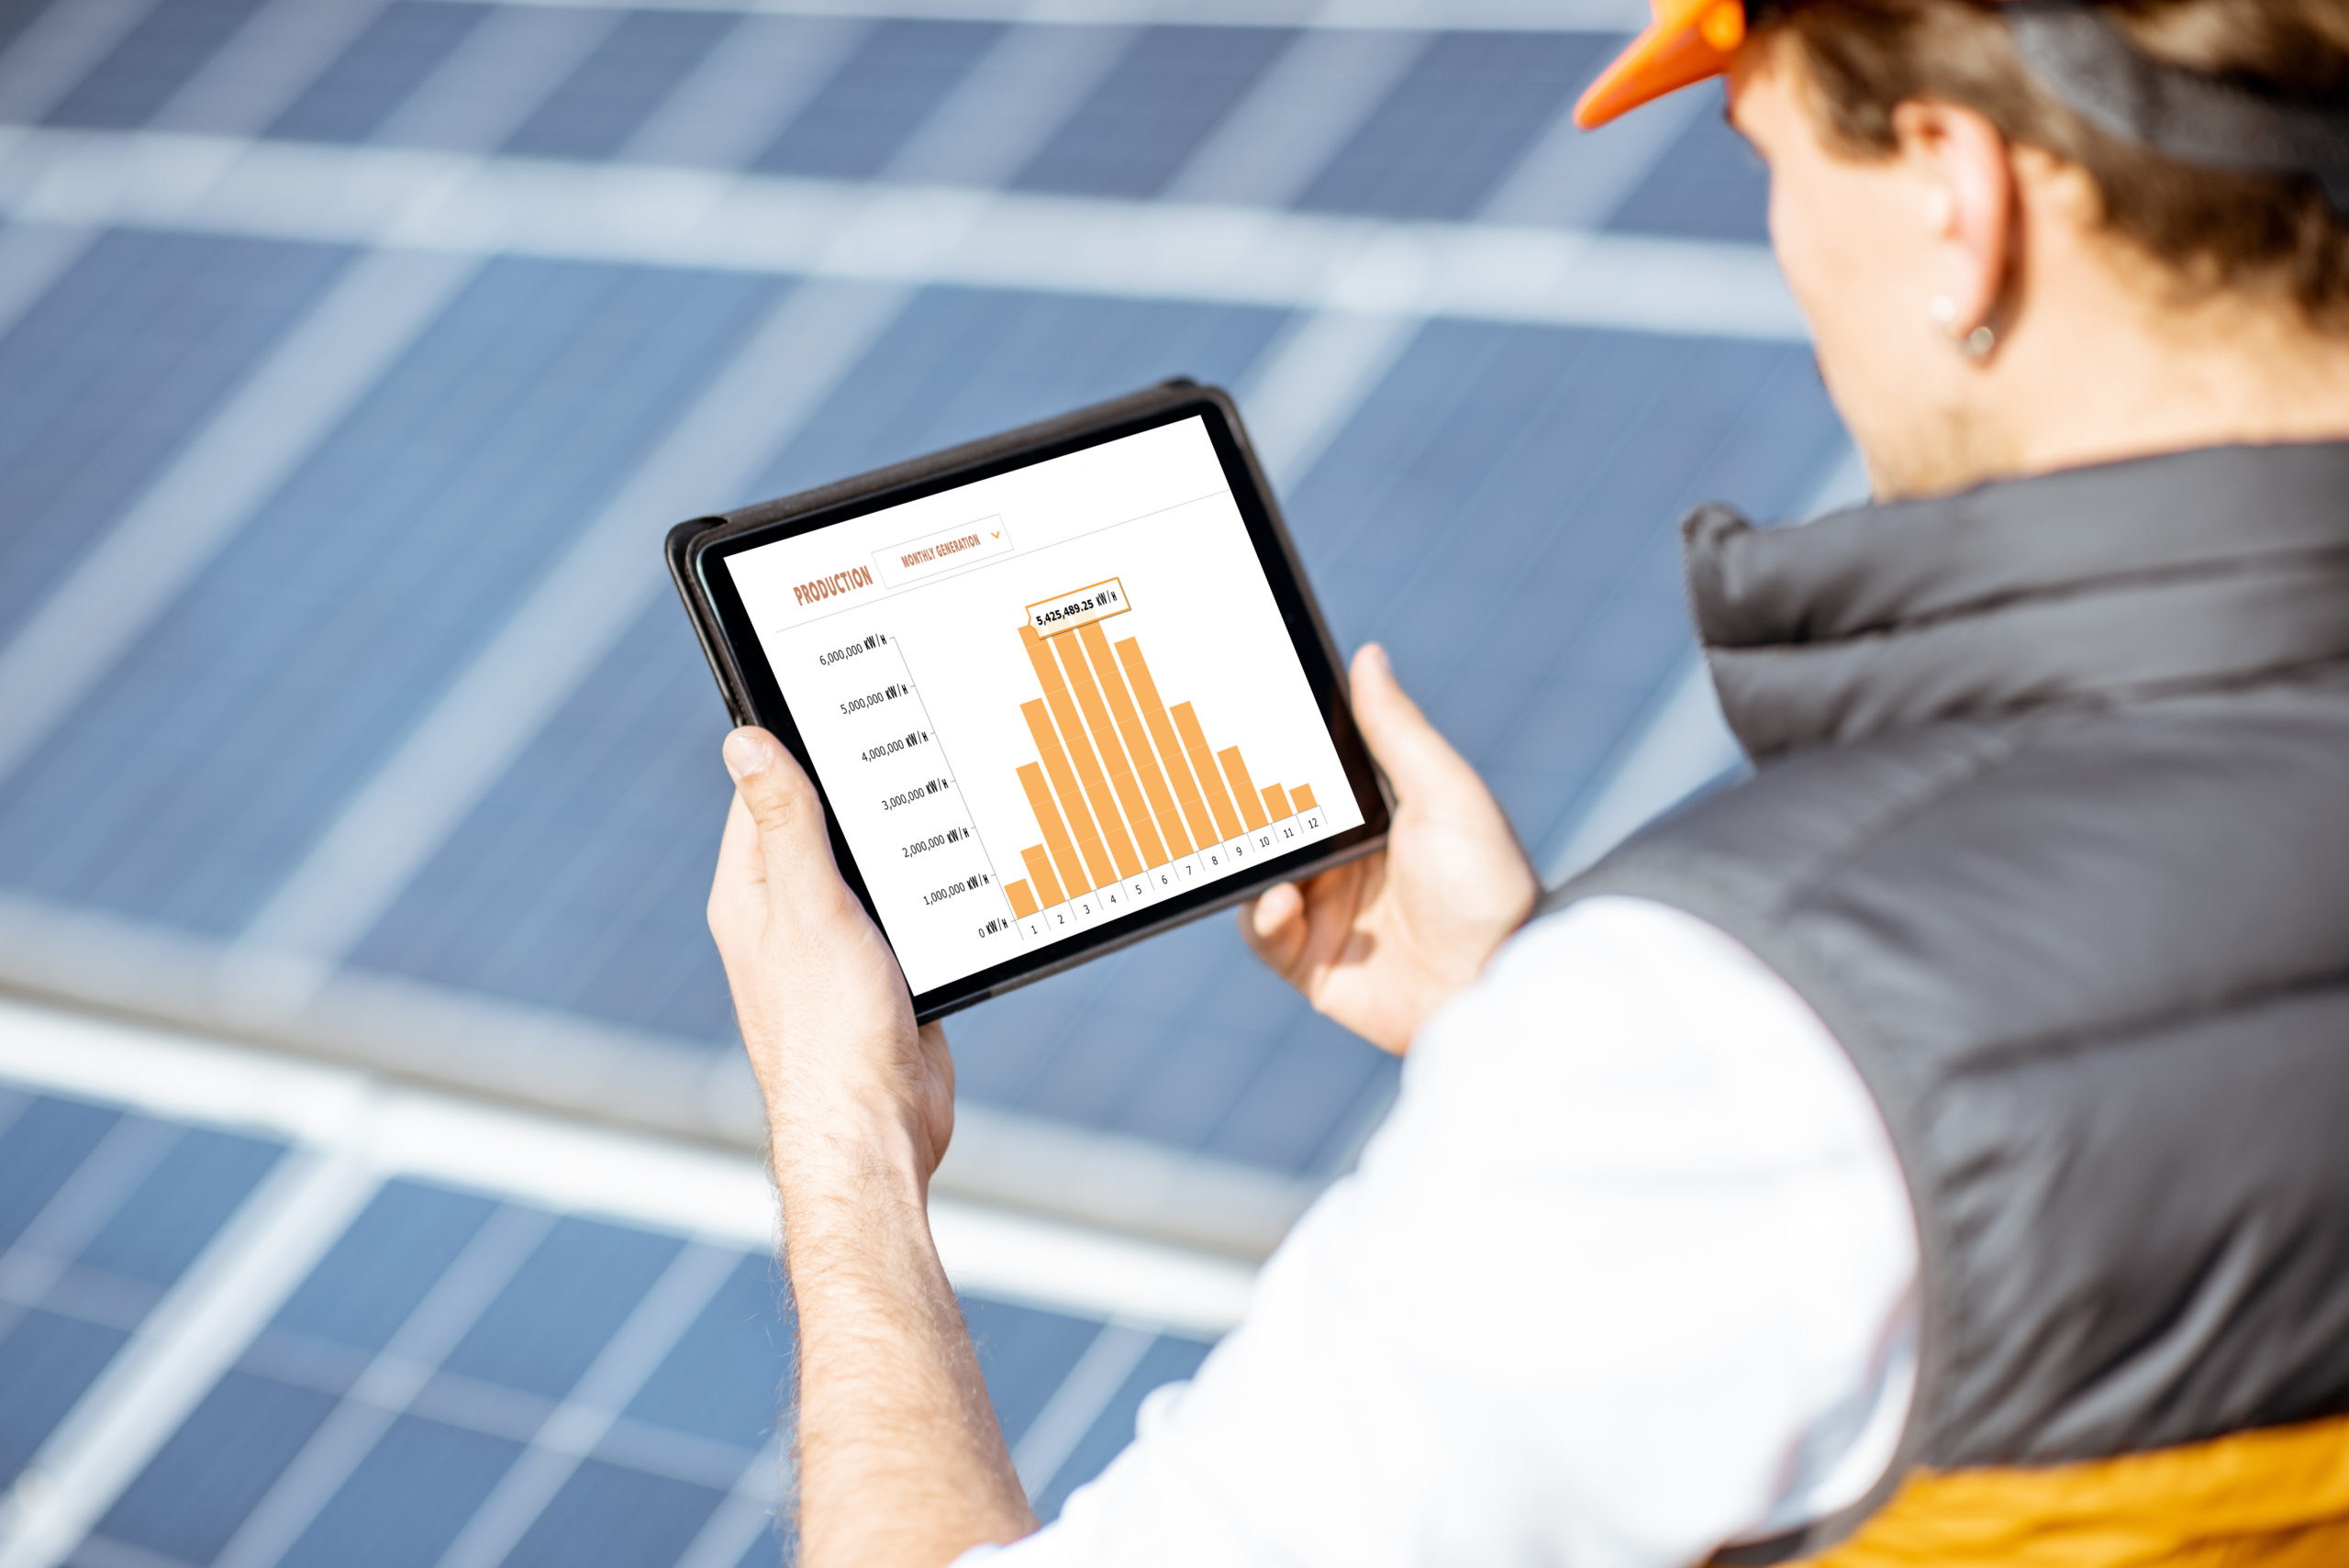 Man examining genaration of solar power plant, holding digital tablet with a chart of electricity production. Concept of online monitoring of the electric station